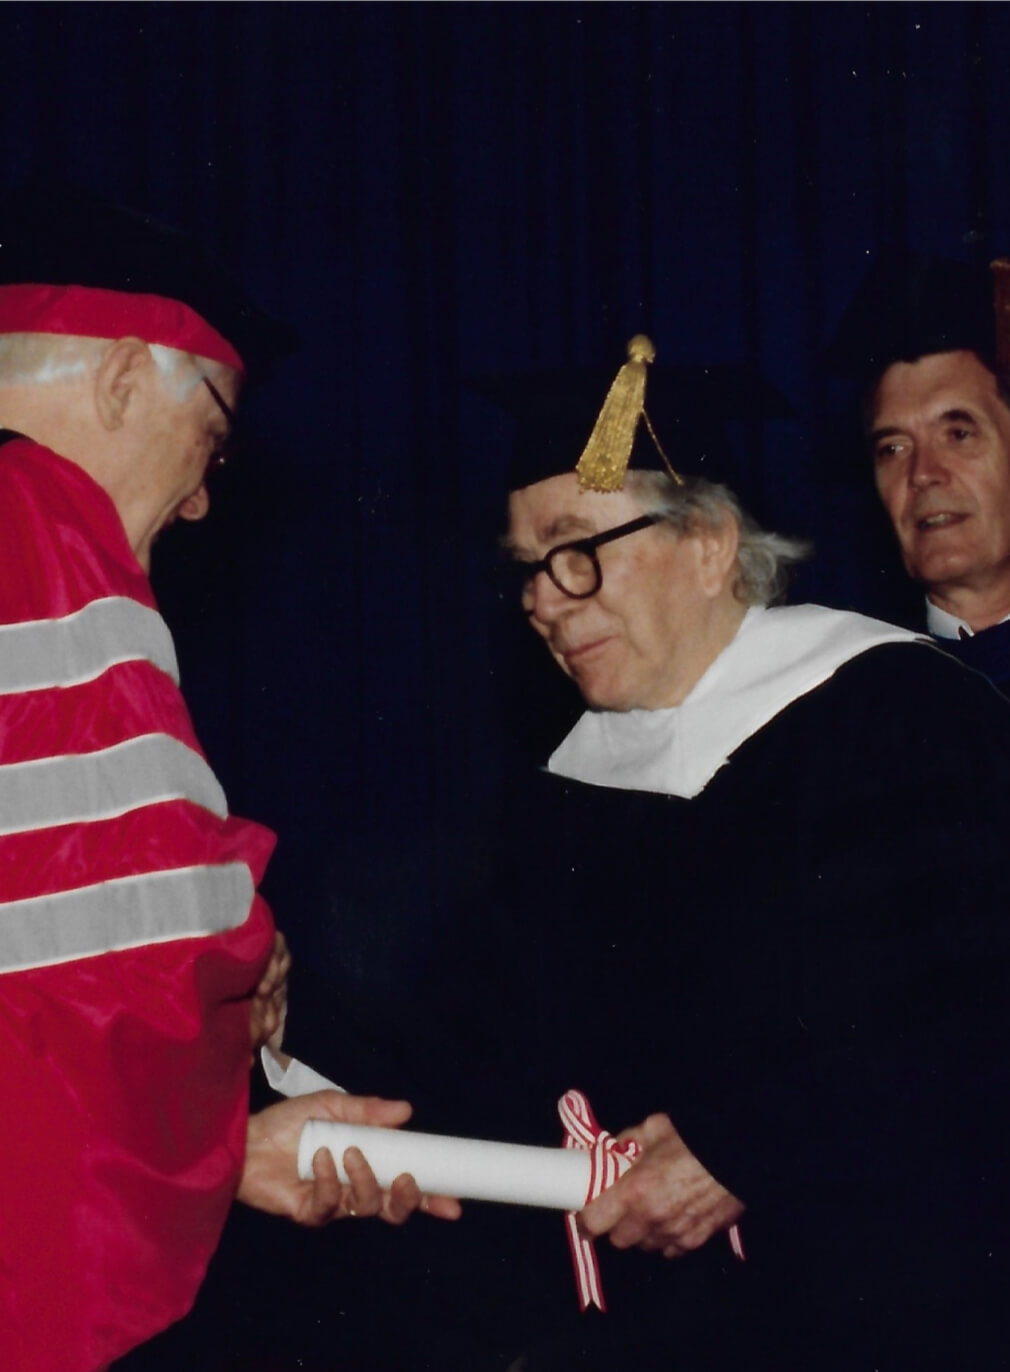 George Rickey receives an honorary doctorate from Rensselaer Polytechnic Institute (RPI), Troy, NY, May1990